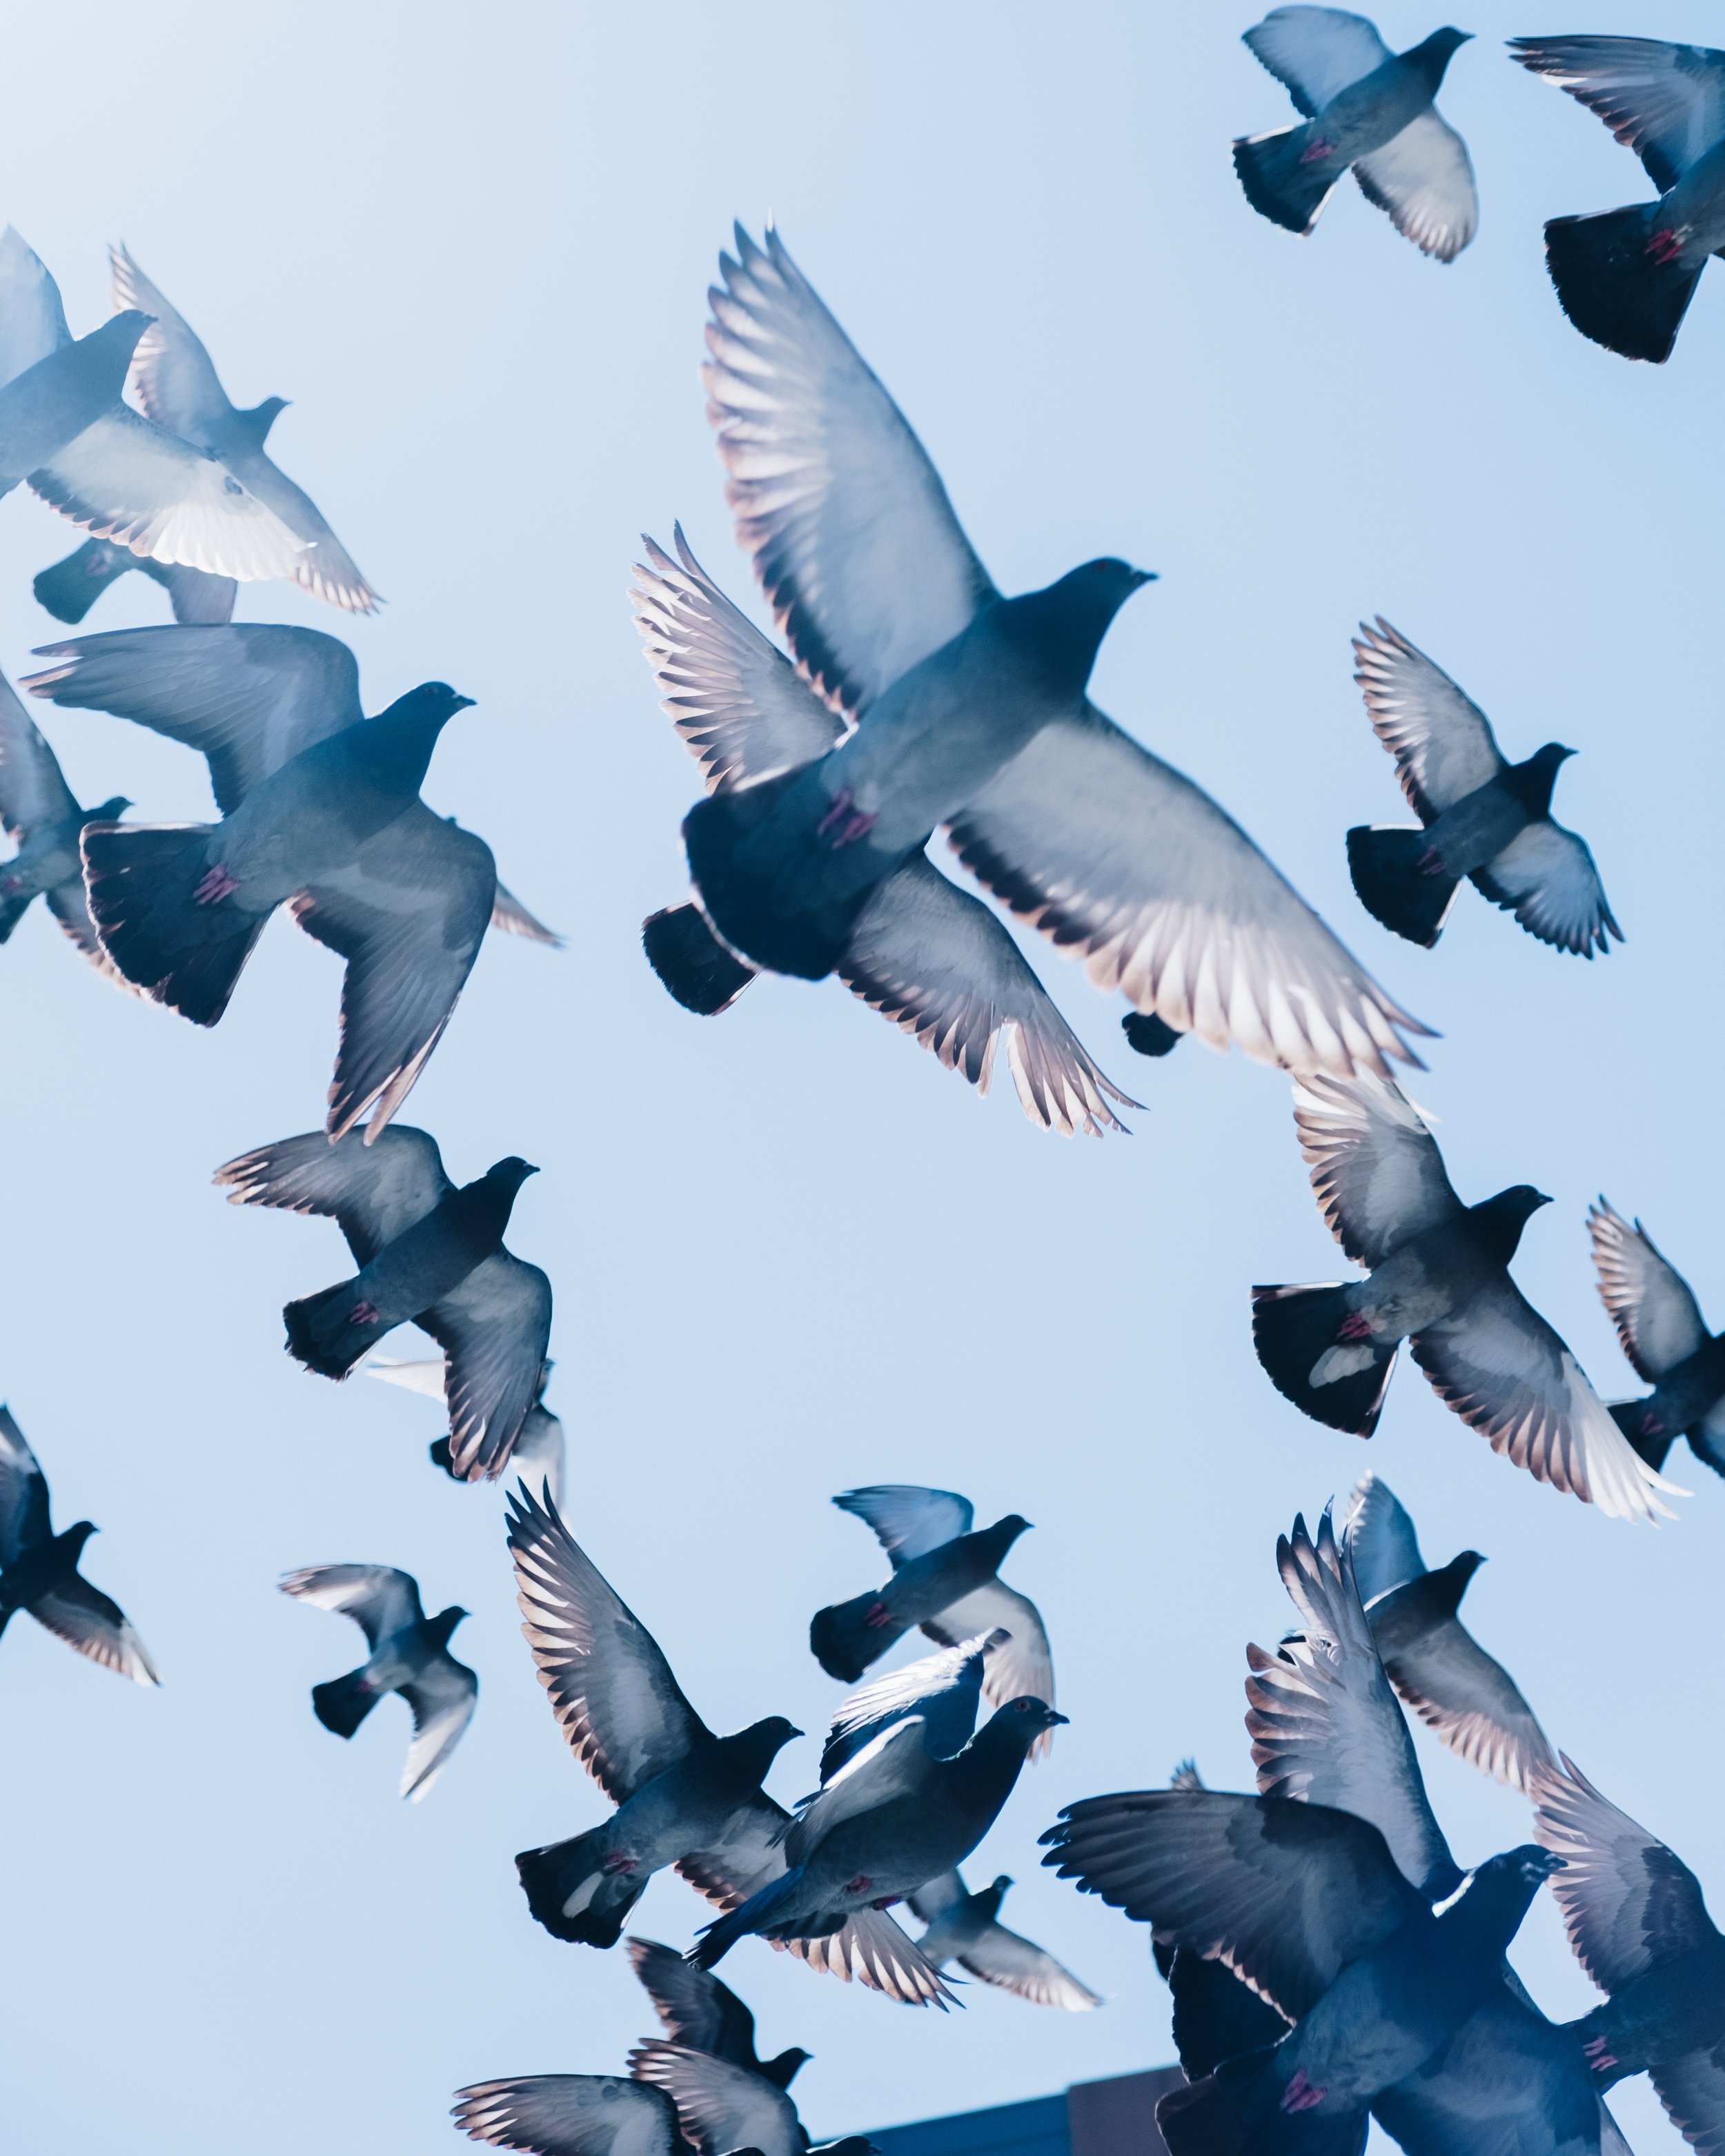 birds-flying.jpg